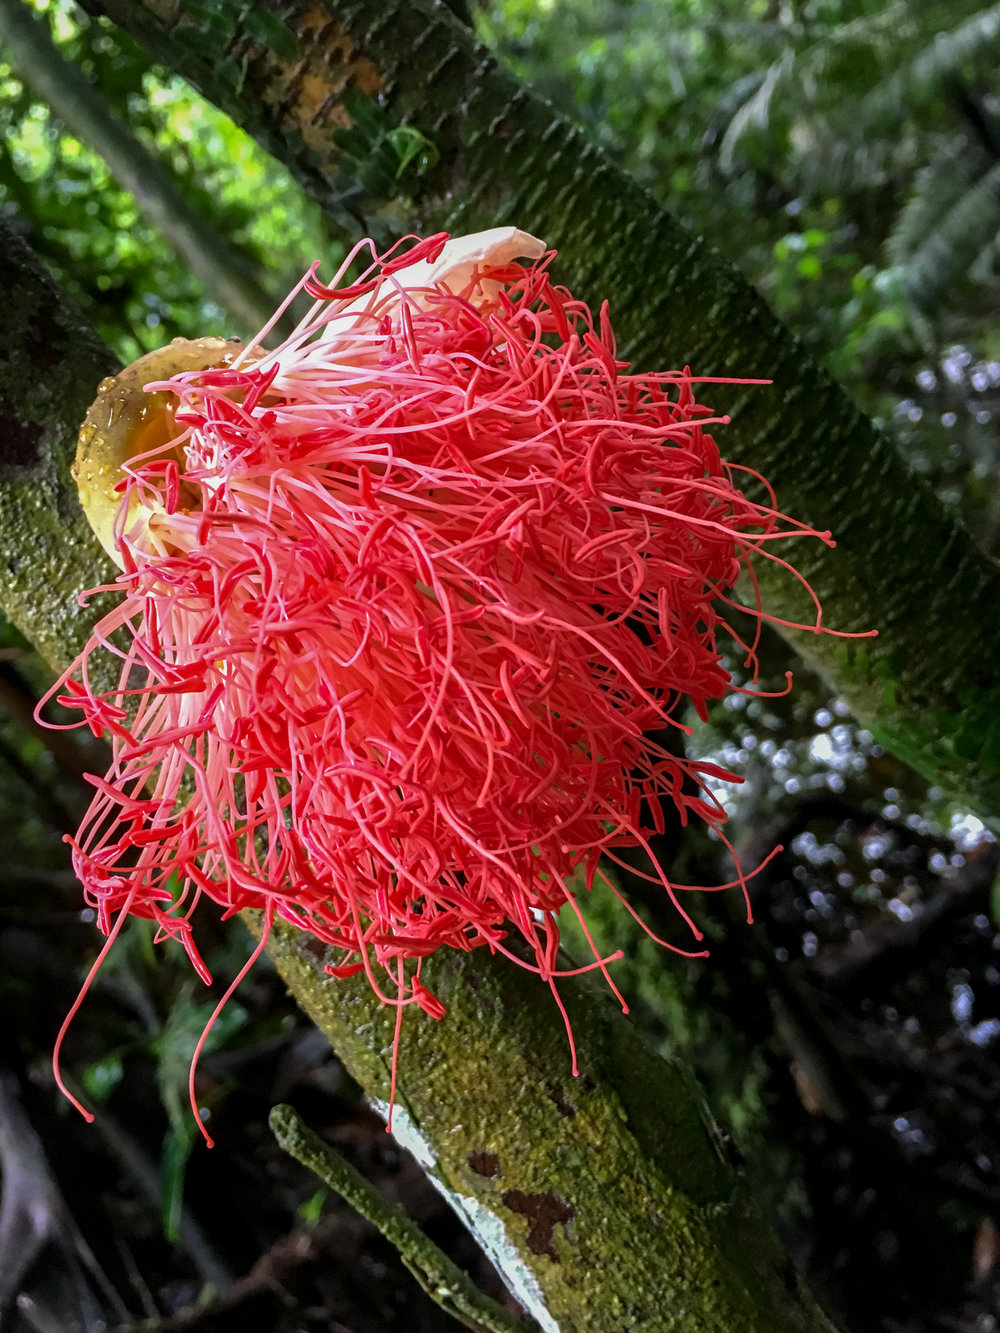 Some crazy plants in the Amazon...